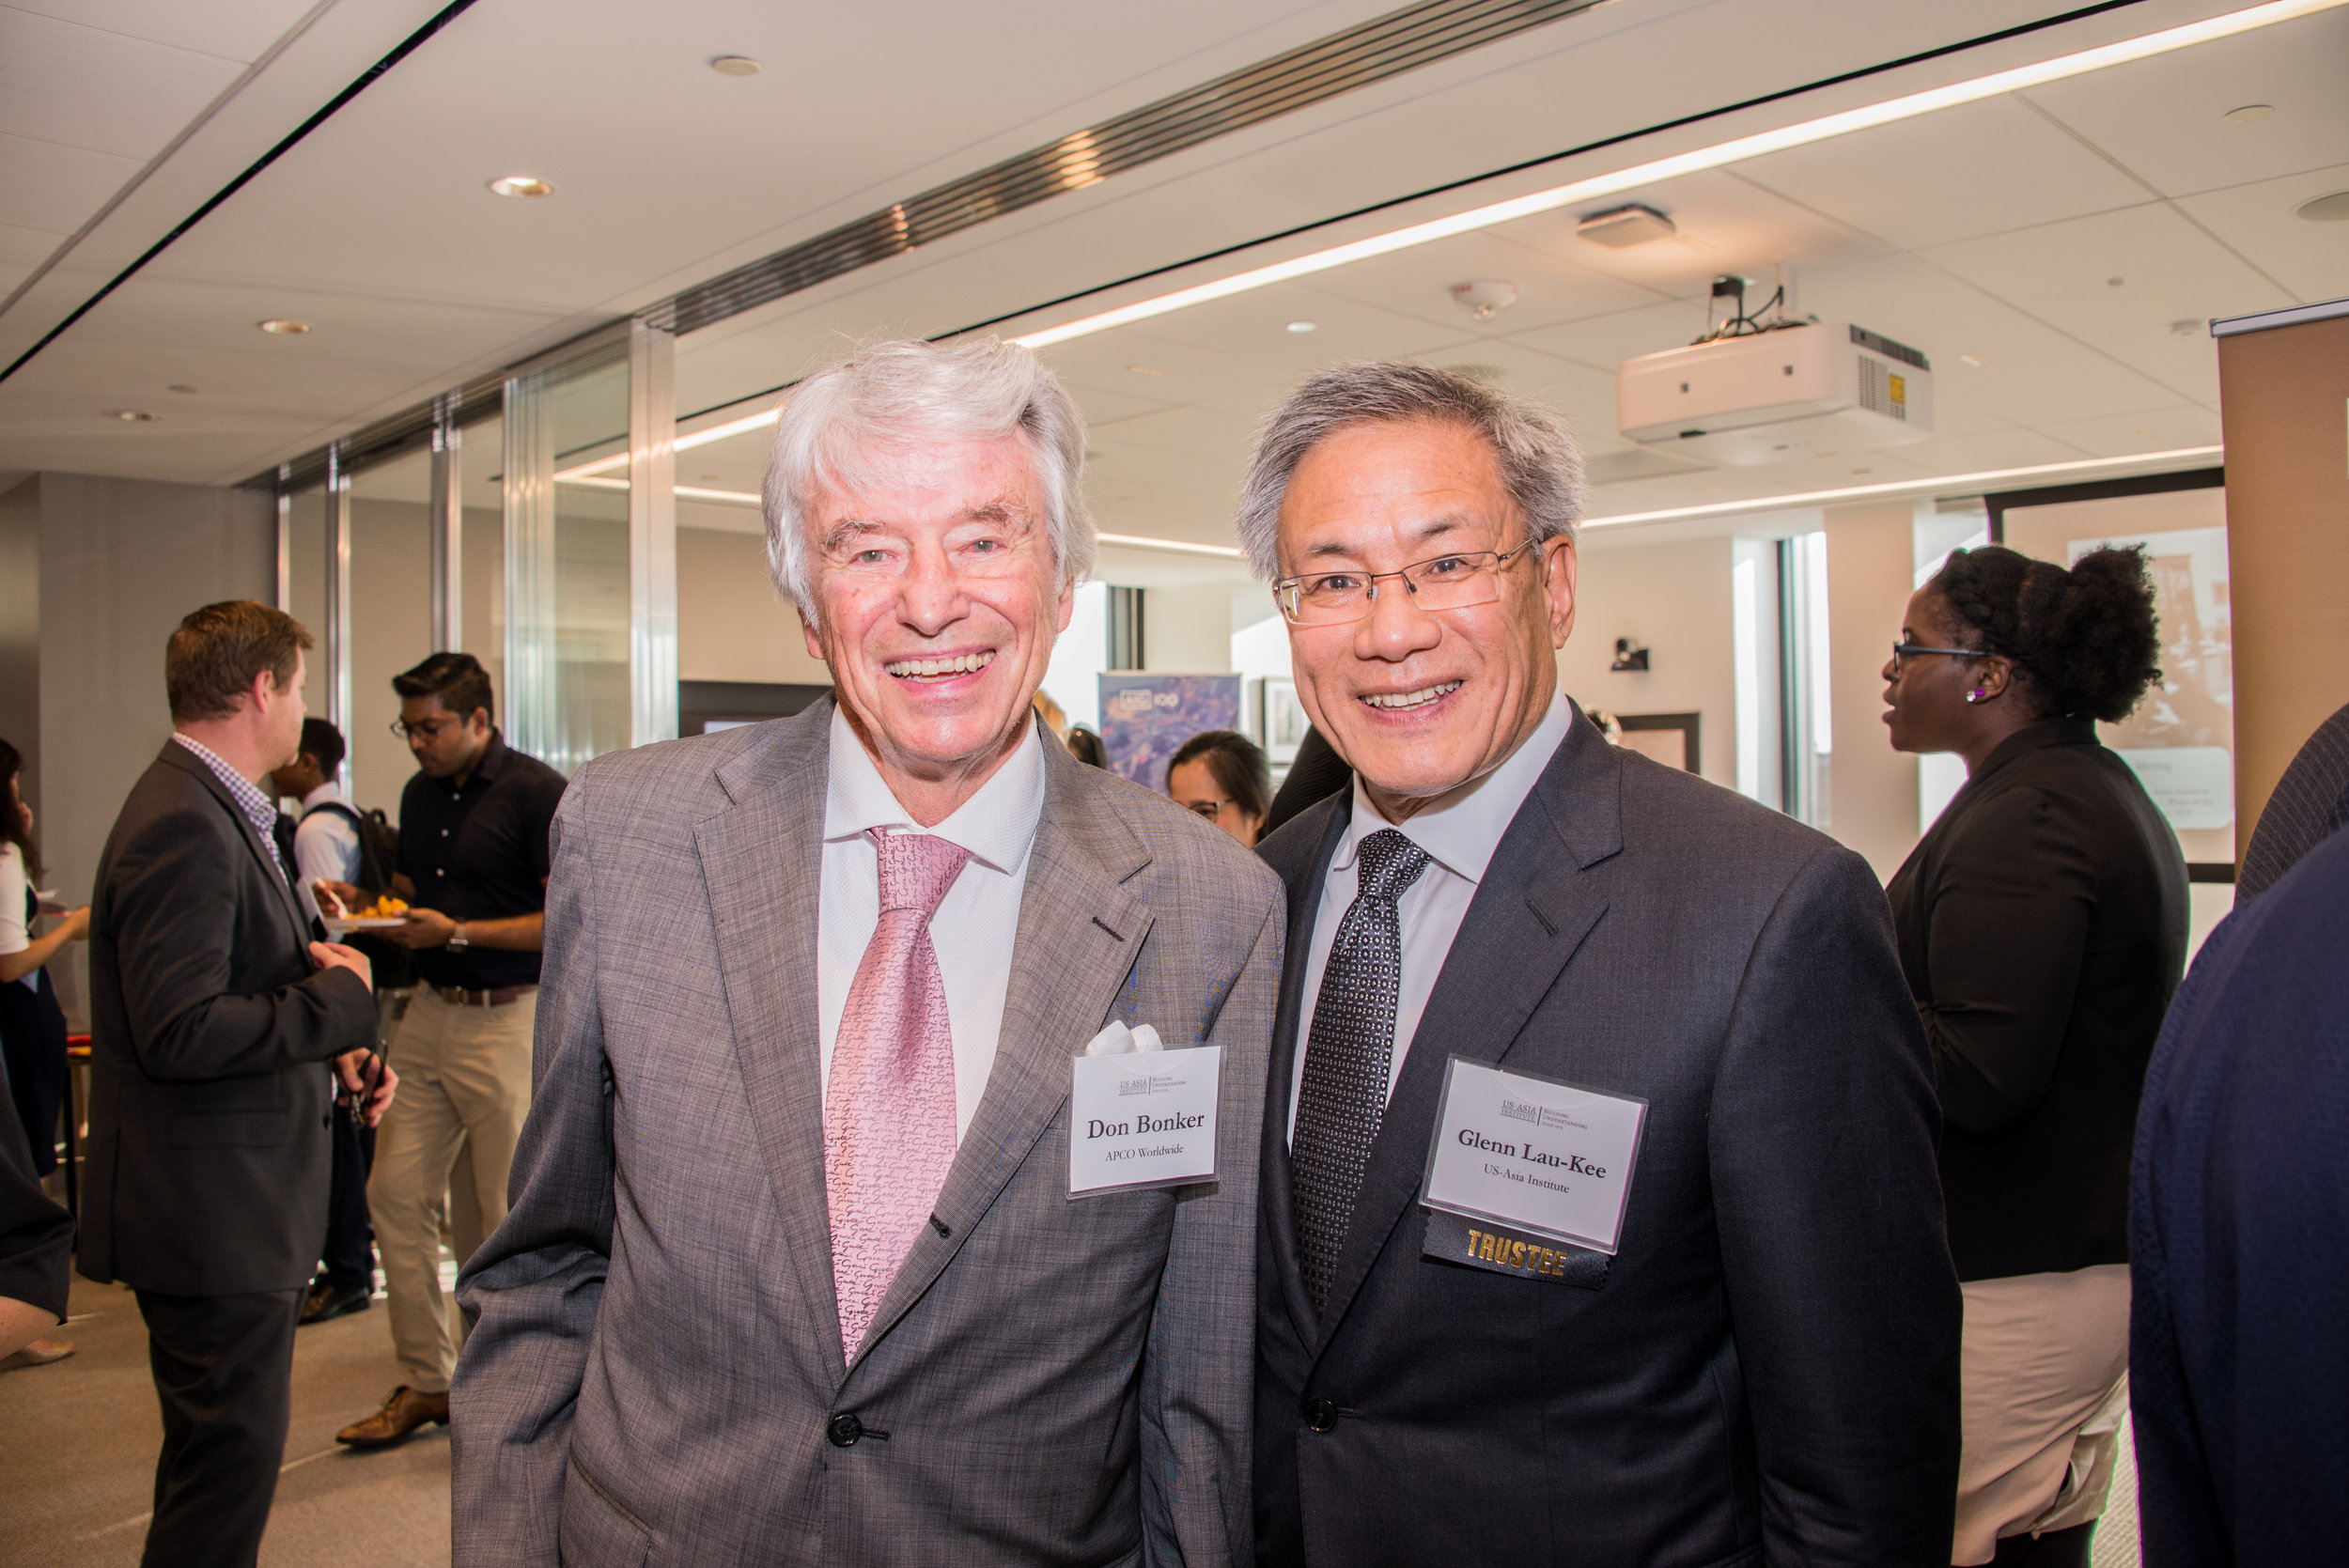 Don Bonker of APCO Worldwide and Chairman Glenn Lau-Kee.jpg